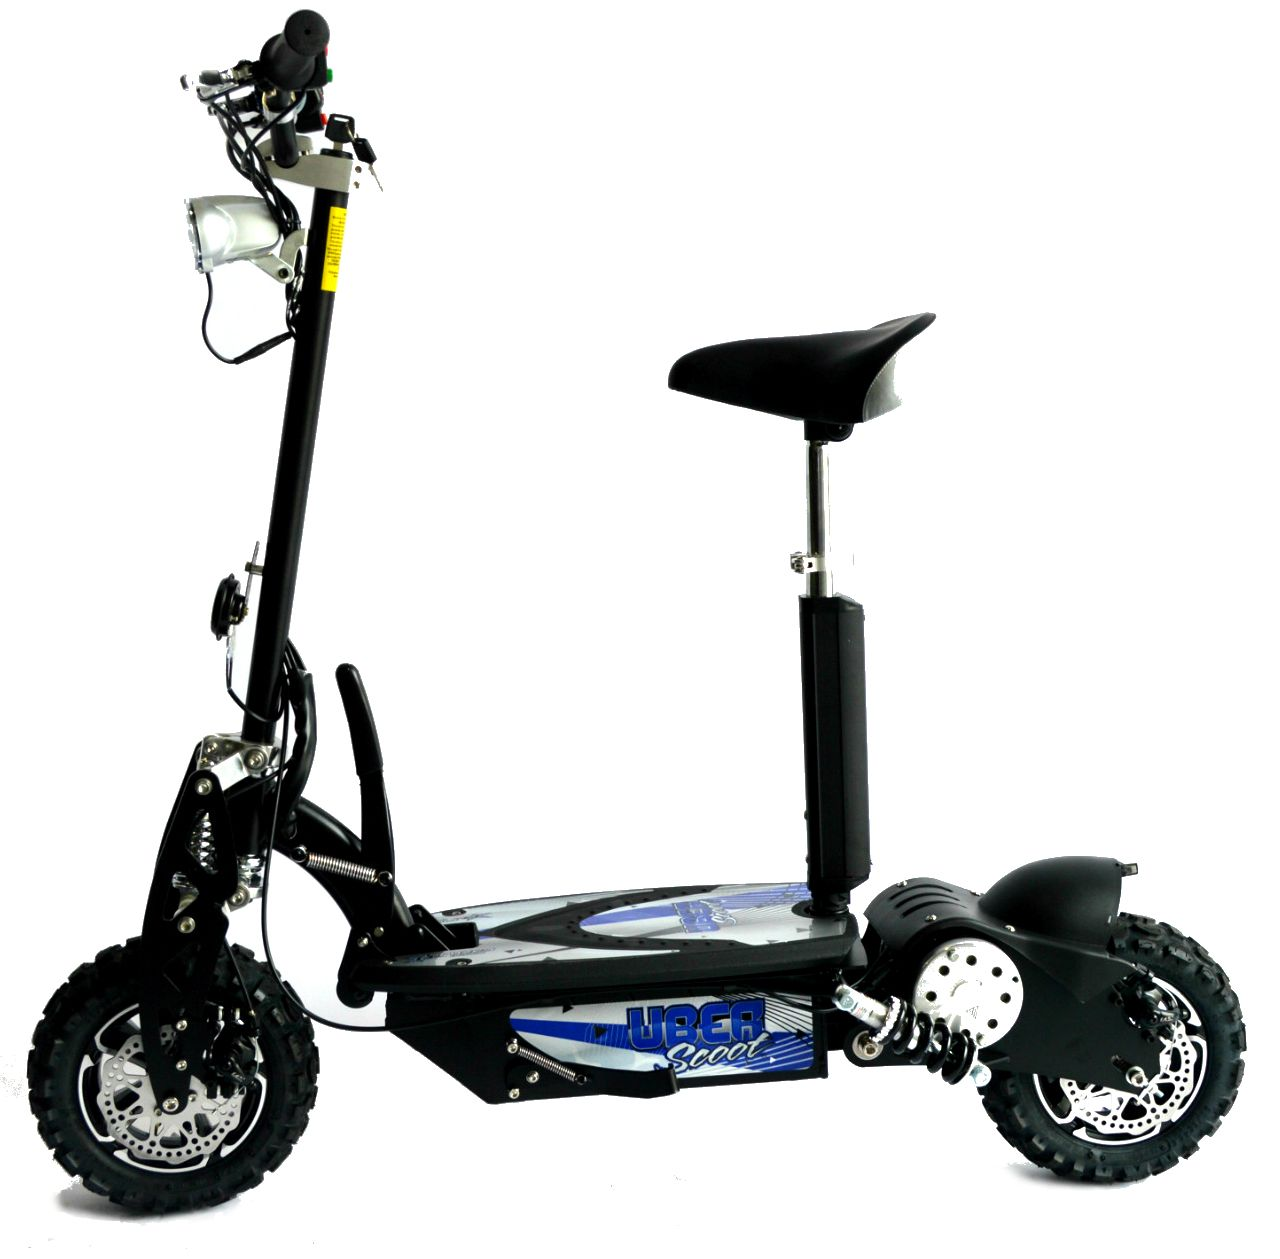 Purchase A Hyper 1300w Electric Scooter From Online For A Fun Ride